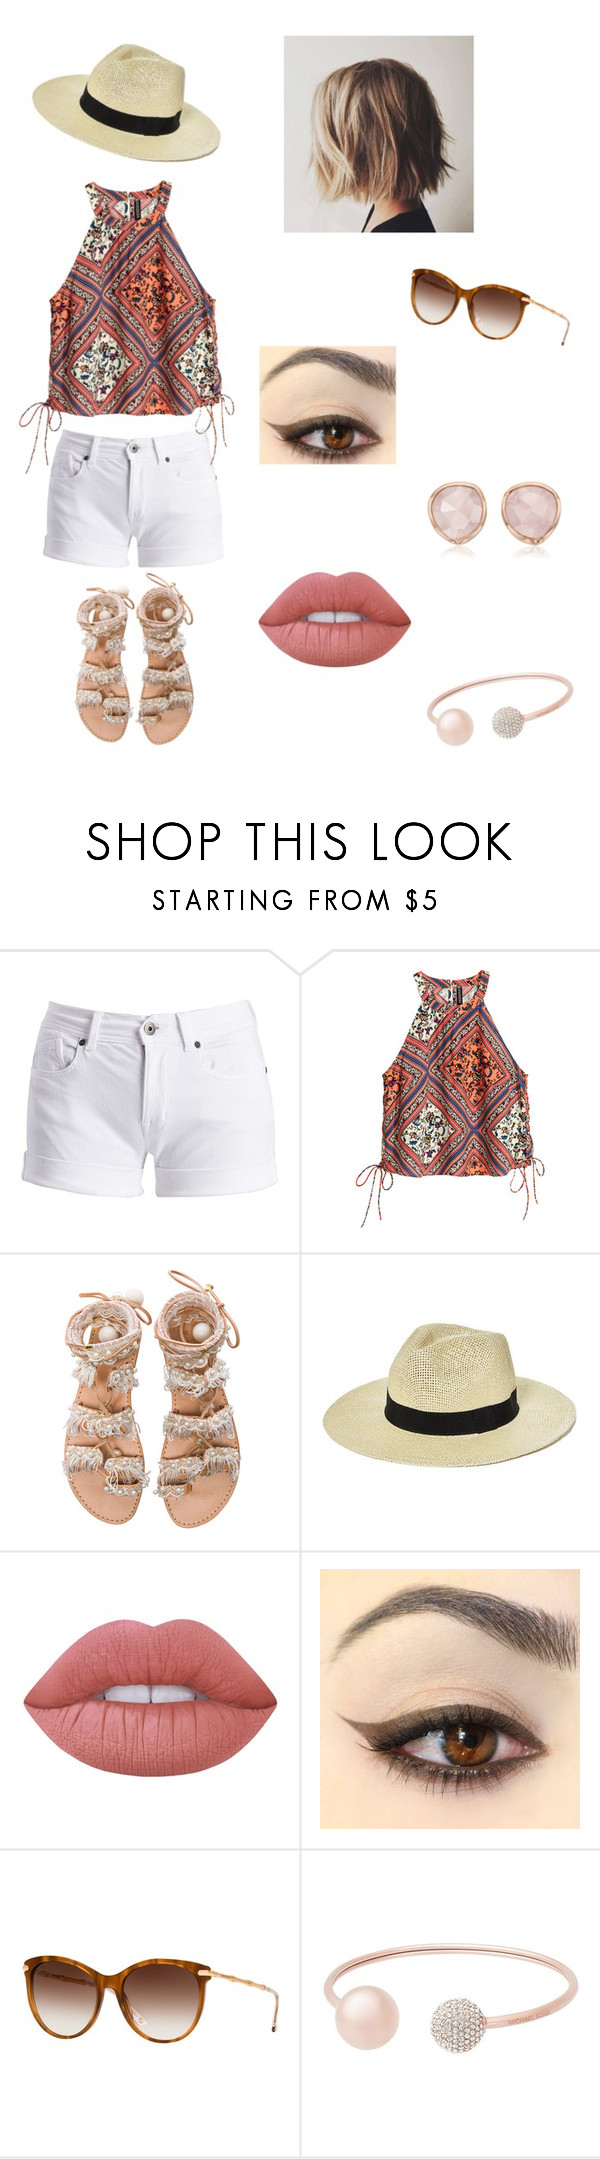 """jump right over into cold, cold water"" by chandagrace ❤ liked on Polyvore featuring Barbour International, H&M, Elina Linardaki, Boohoo, Lime Crime, Gucci, Michael Kors and Monica Vinader"